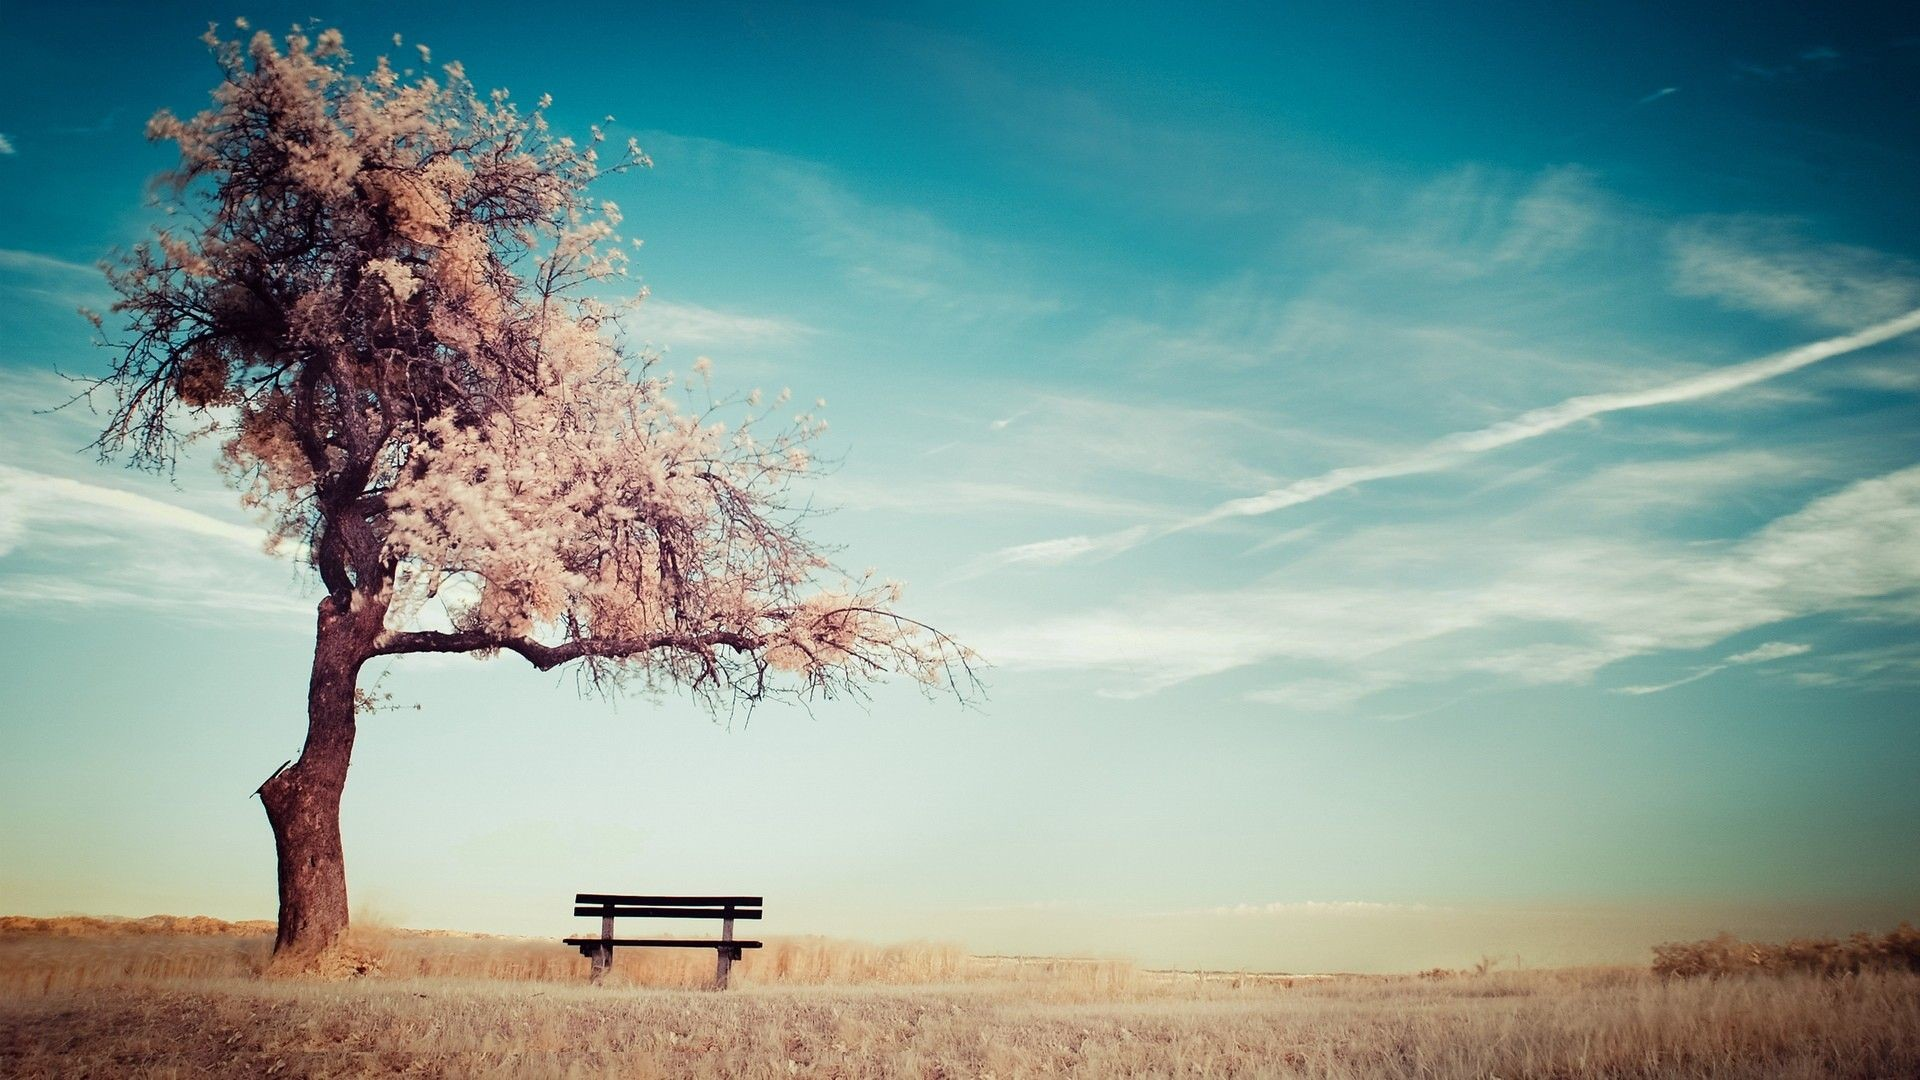 Res: 1920x1080, Cherry Blossoms by the Bench HD Wallpaper. « »